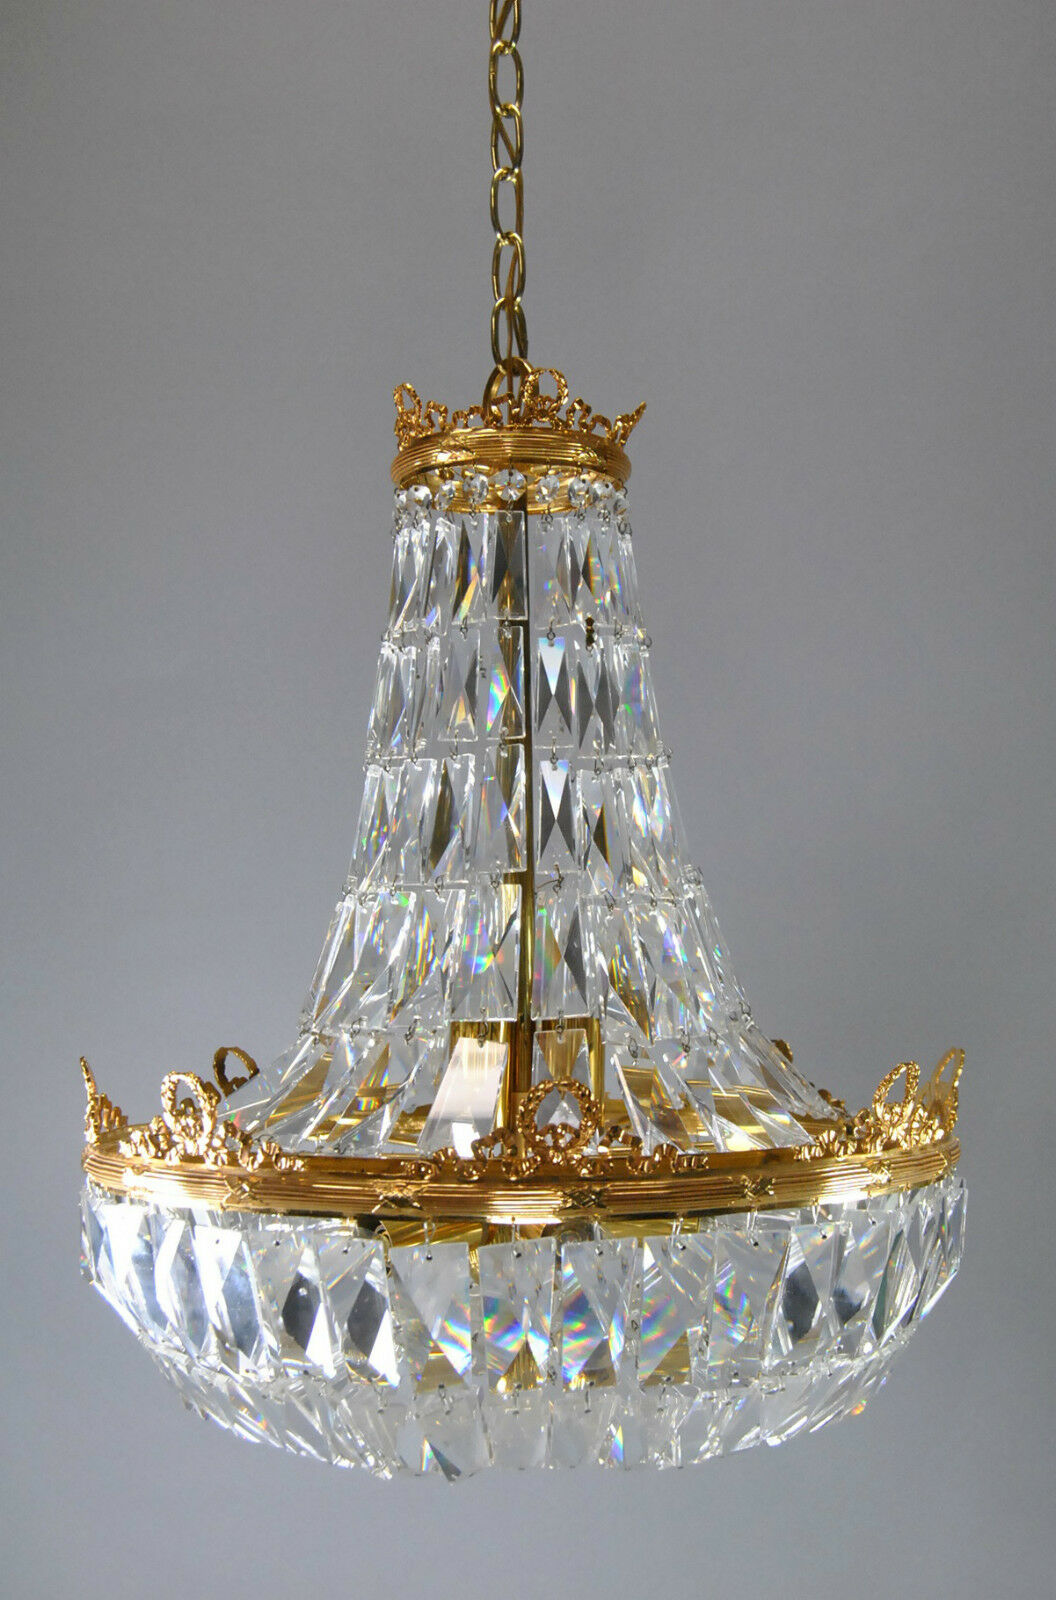 french basket form crystal chandelier with brass frame